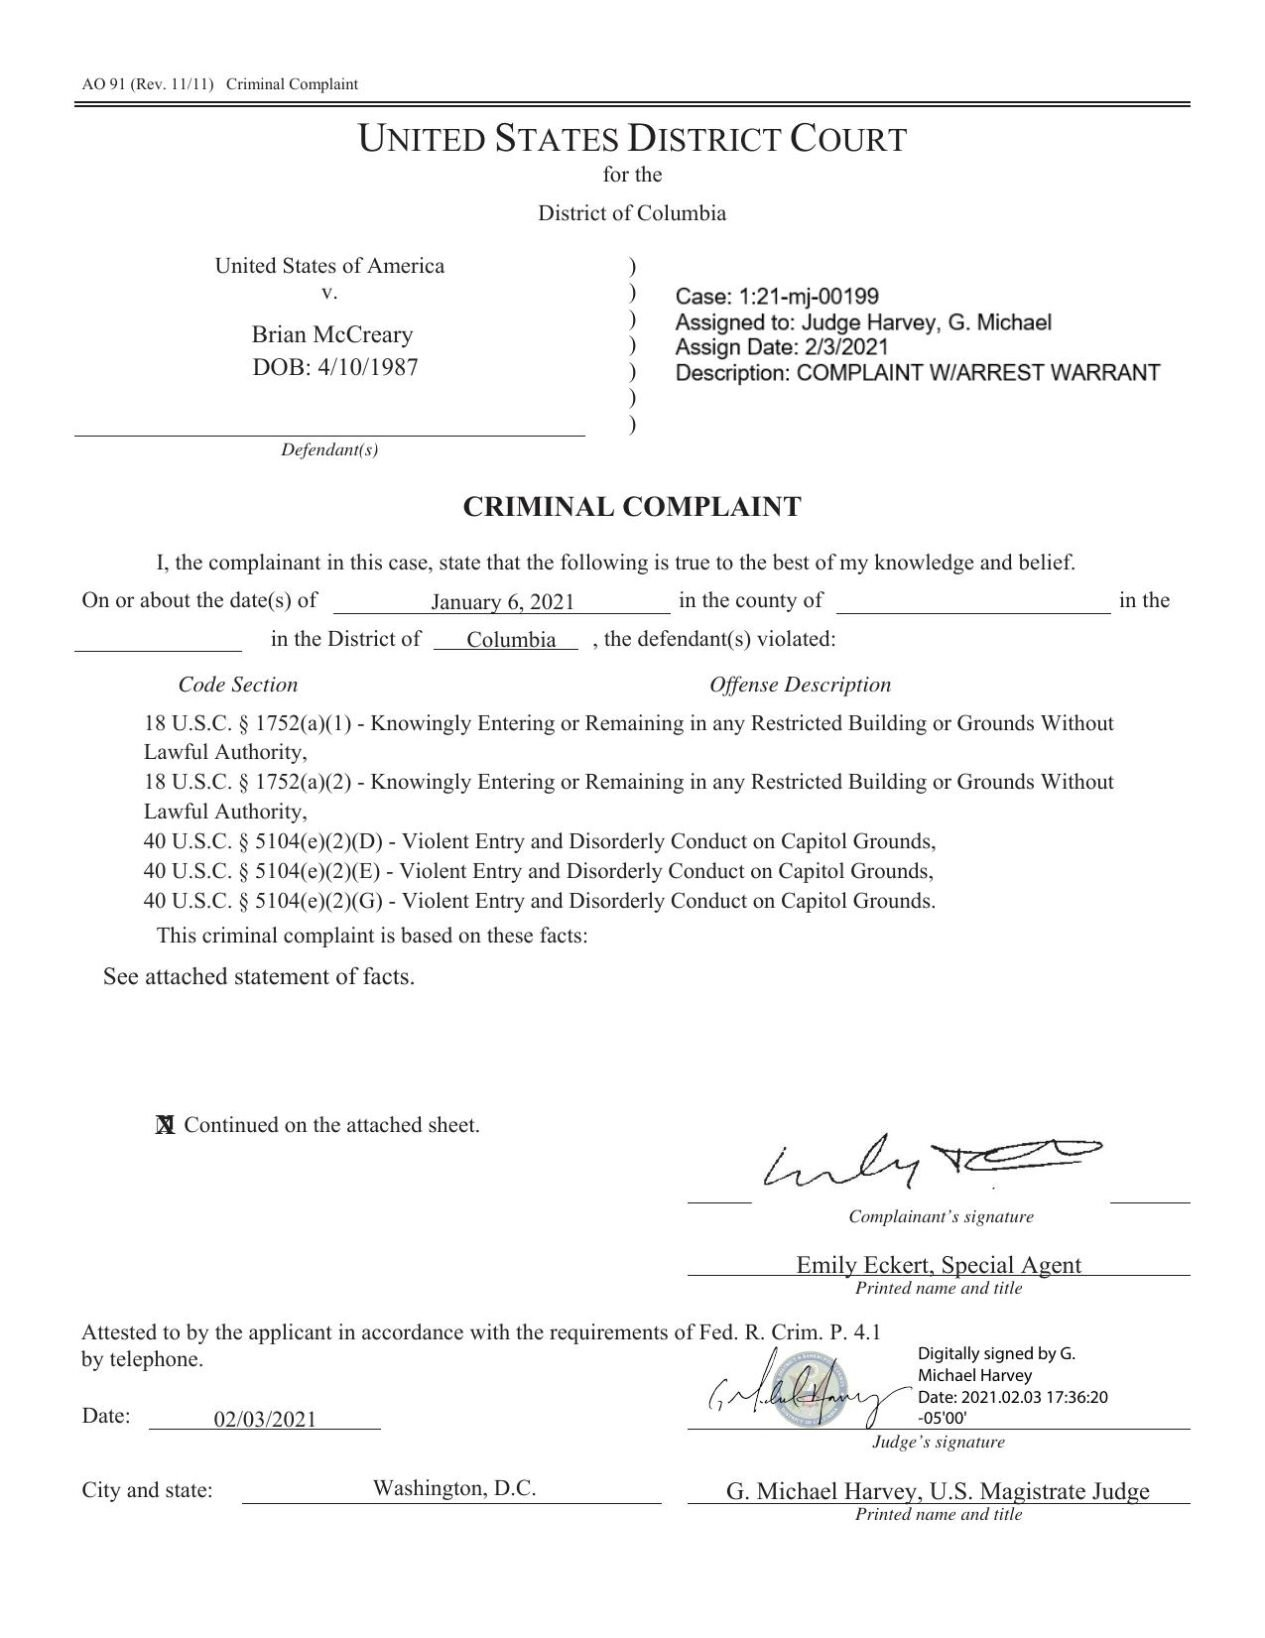 McCreary court complaint